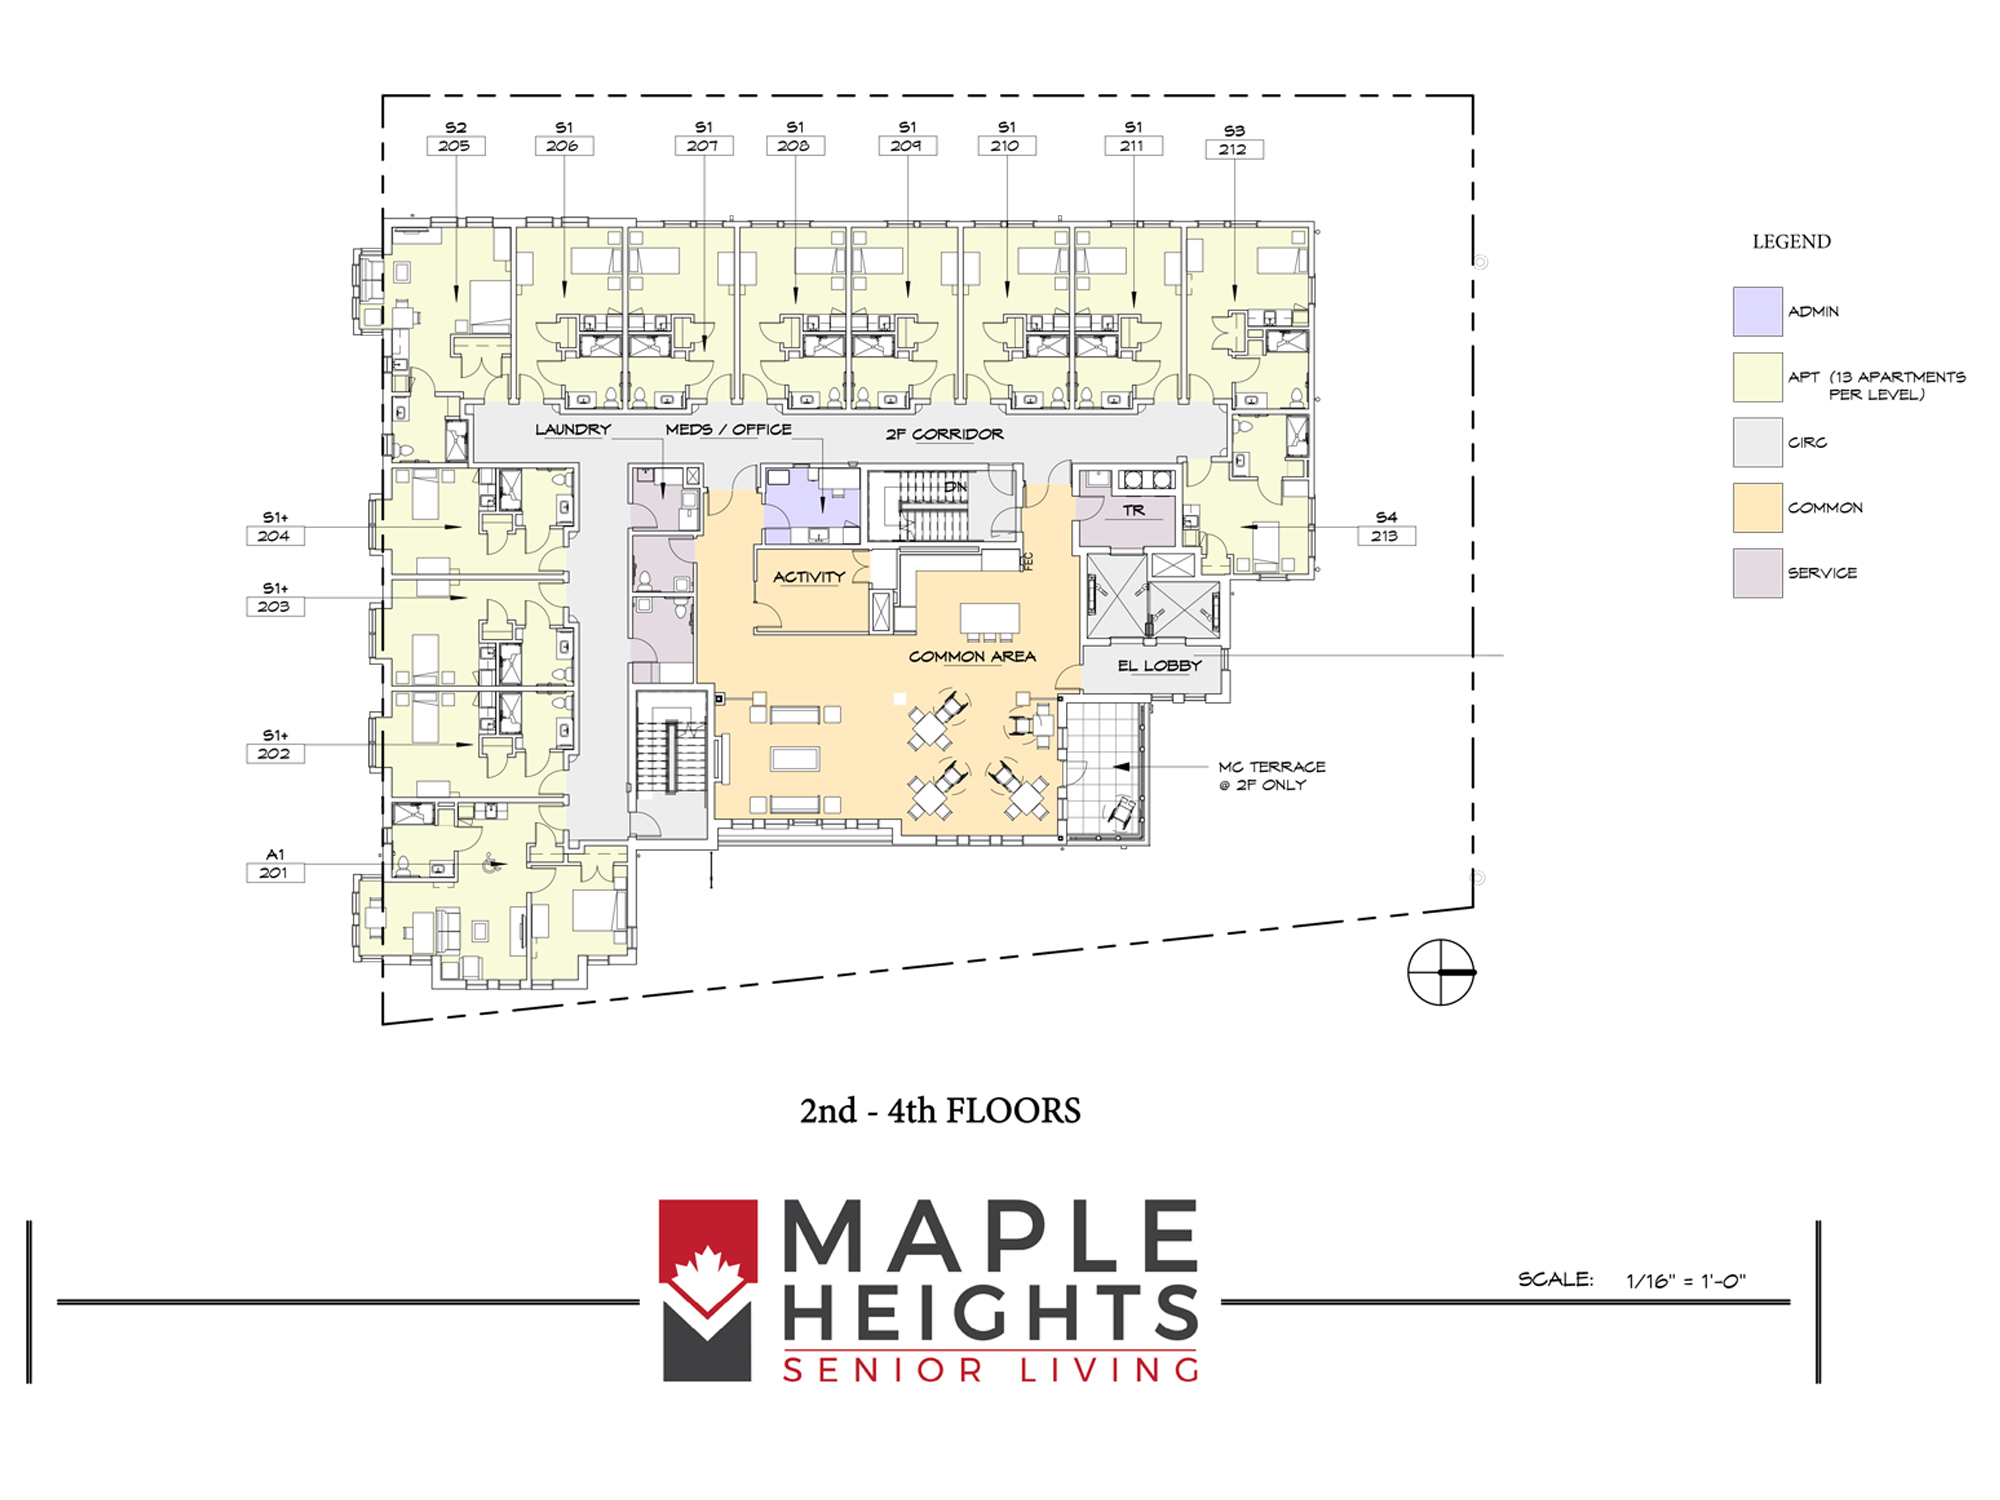 Washington DC Senior Living Floor Plan 2nd-4th Floors